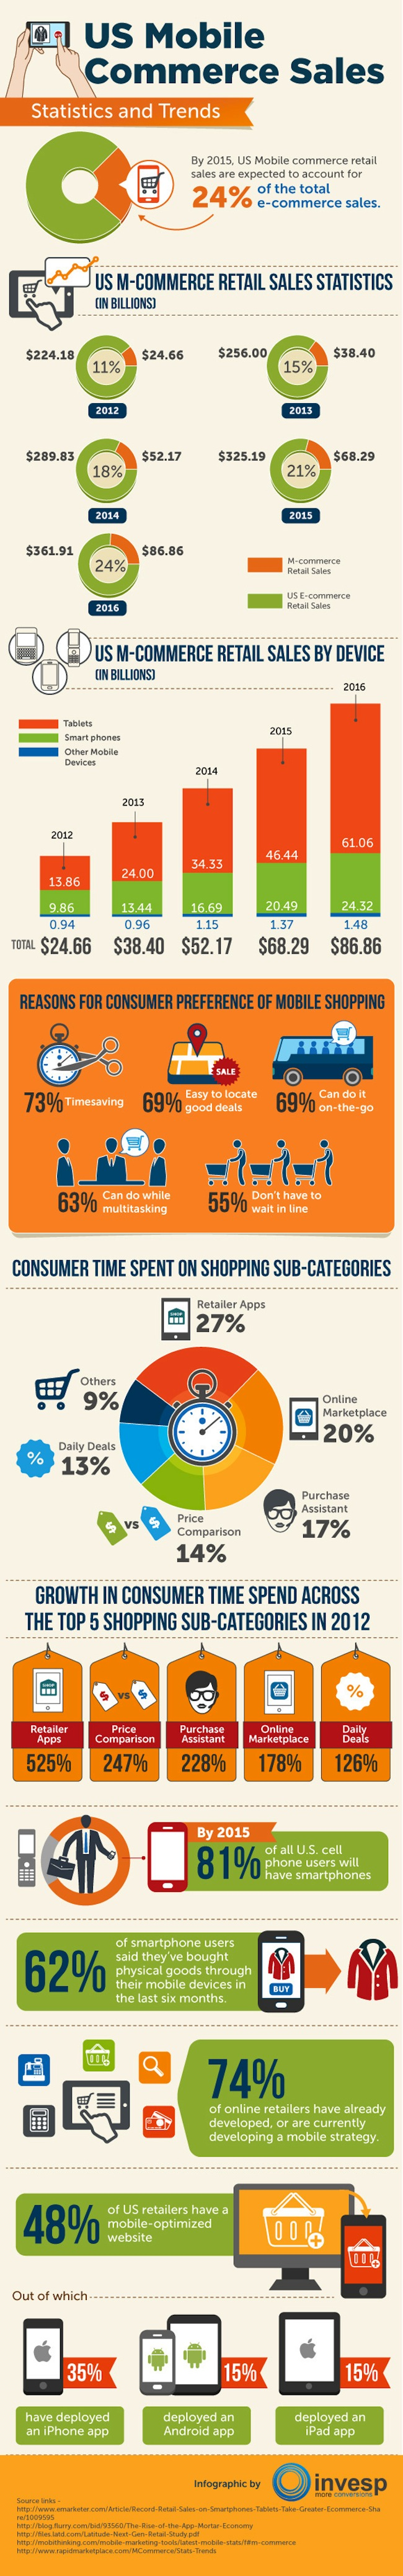 us-mobile-commerce-sales-infographic-1